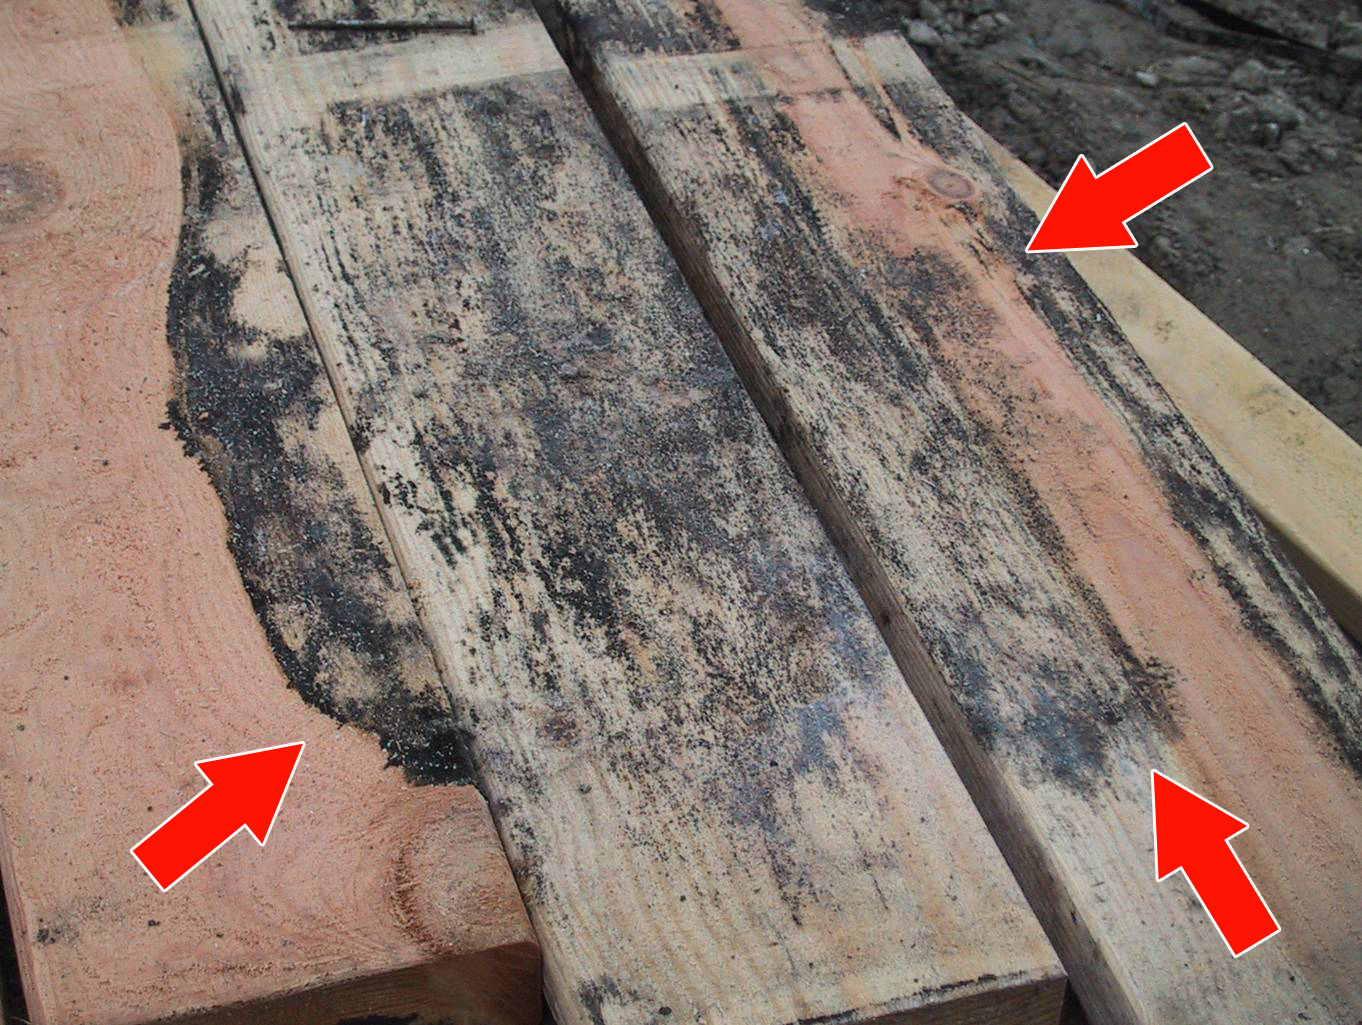 Lumber with Visible Mold